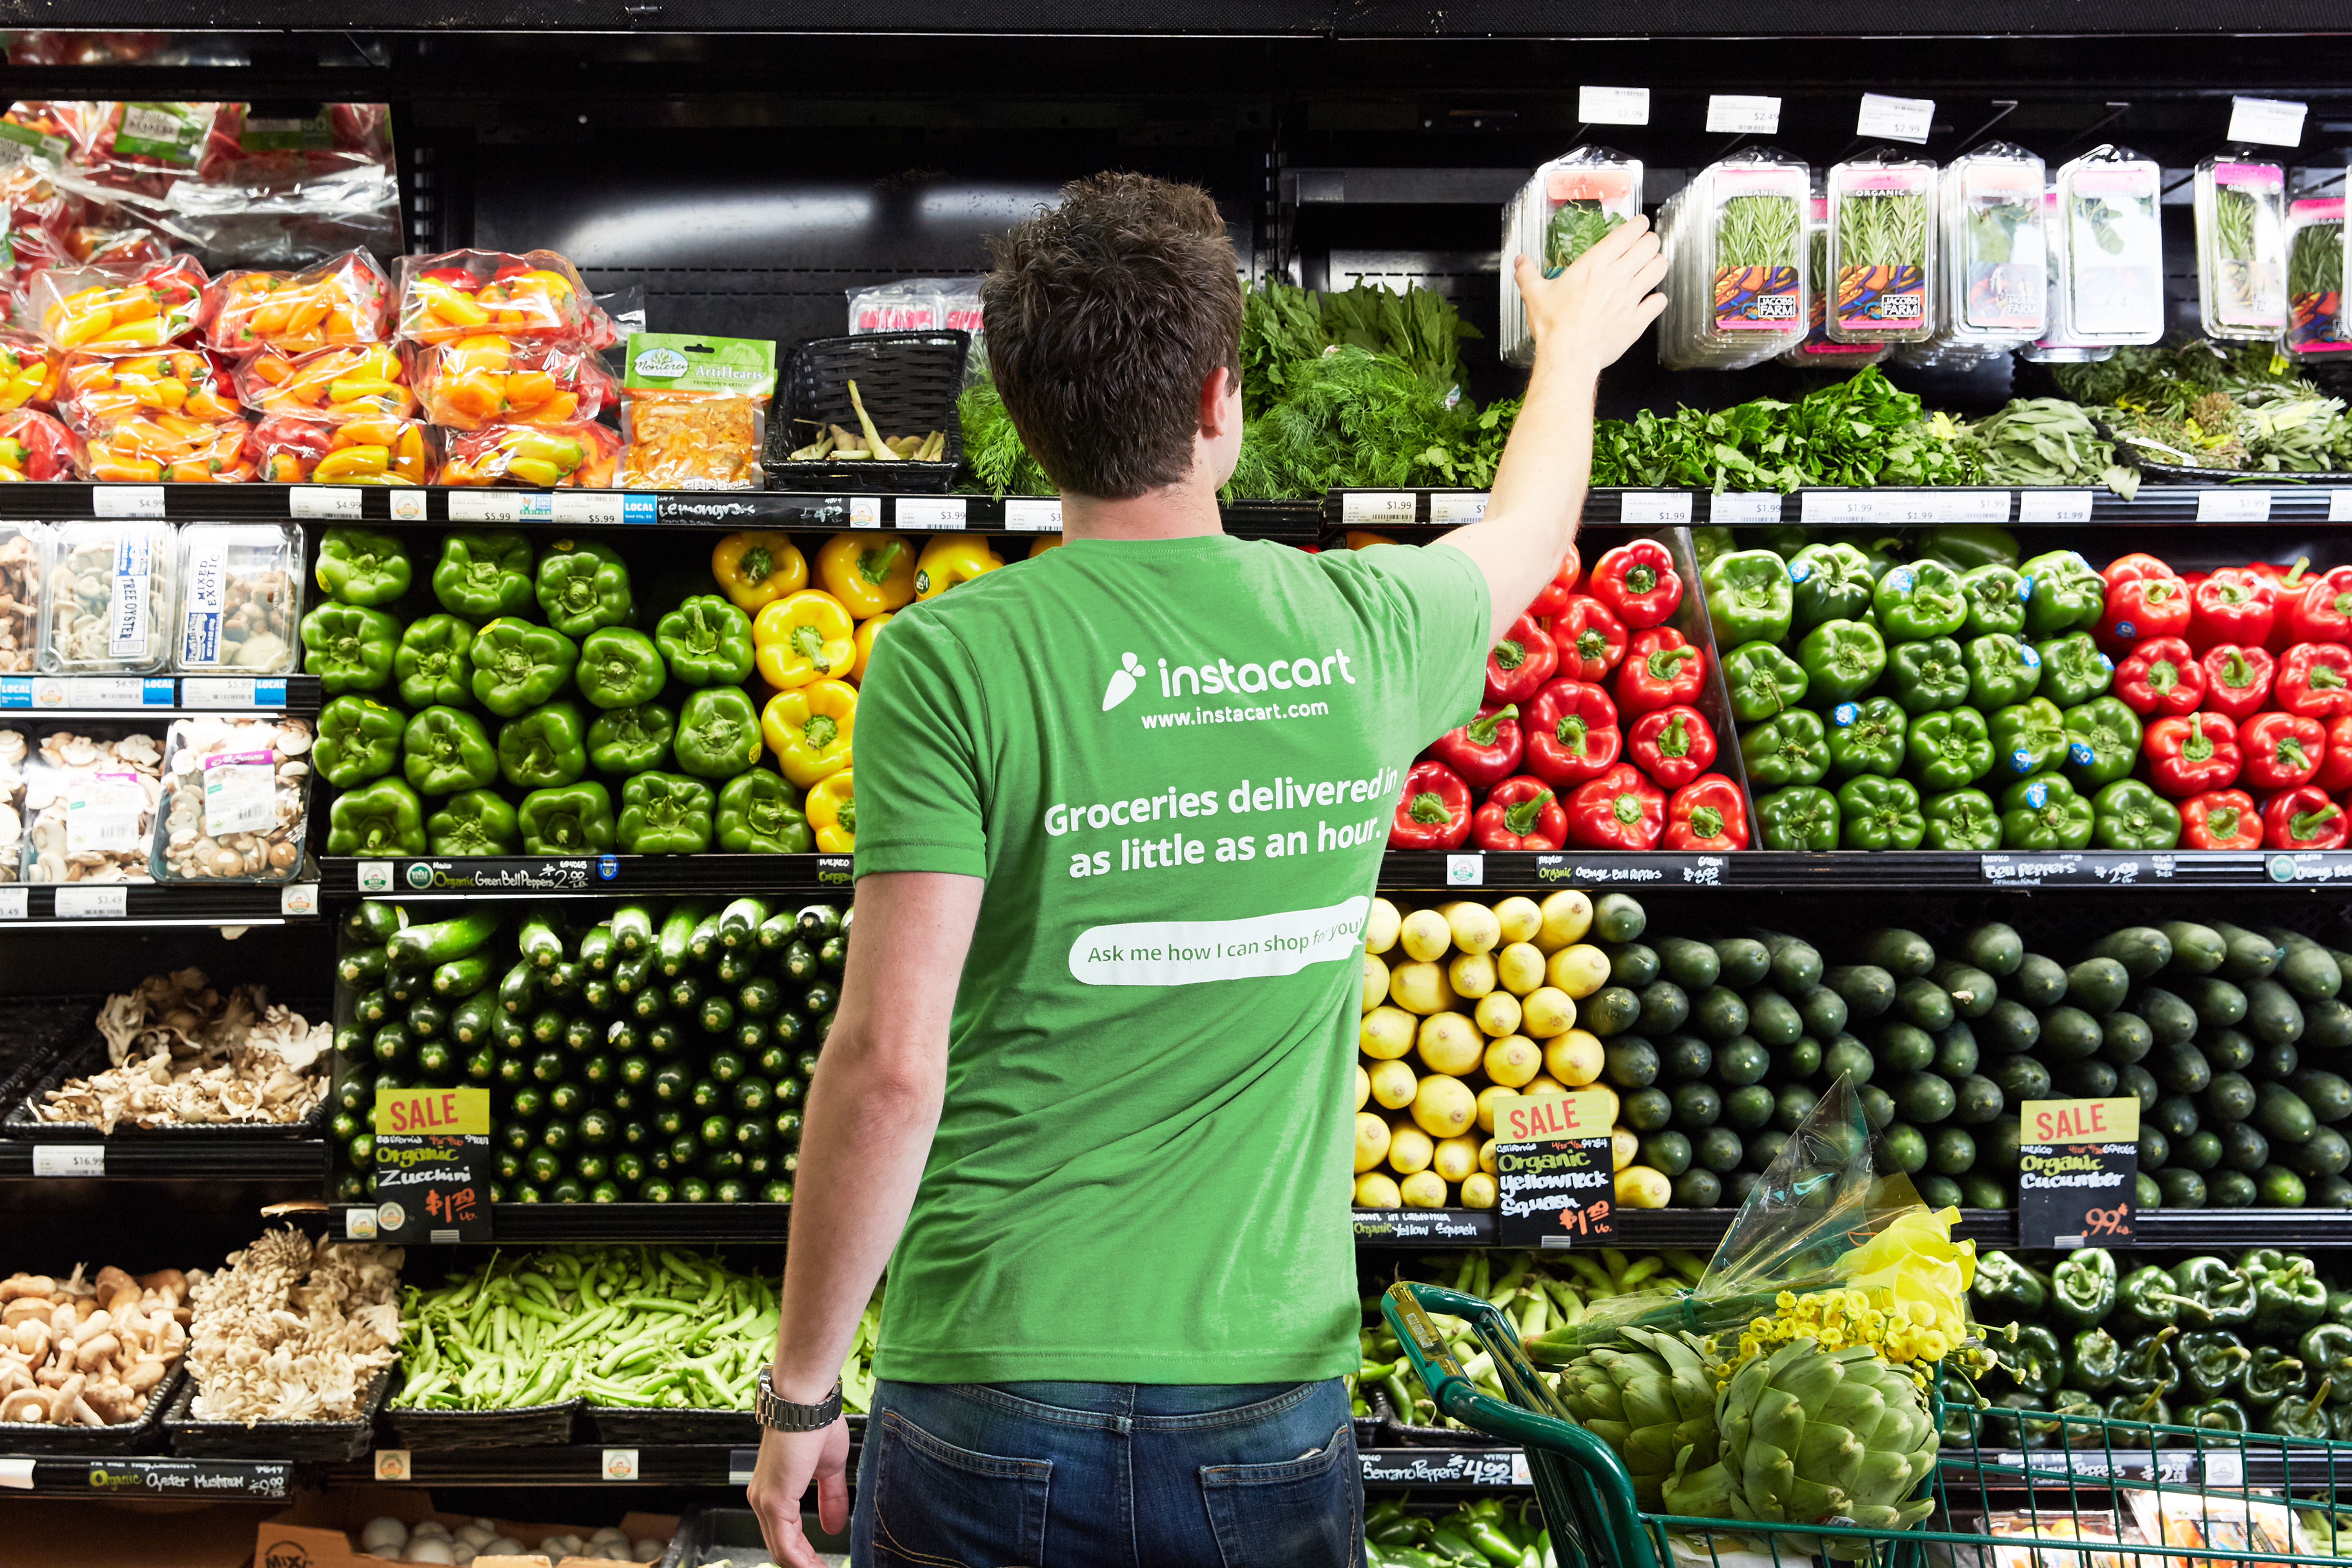 Sam's Club joins pack of suitors wooing Dallas with grocery delivery